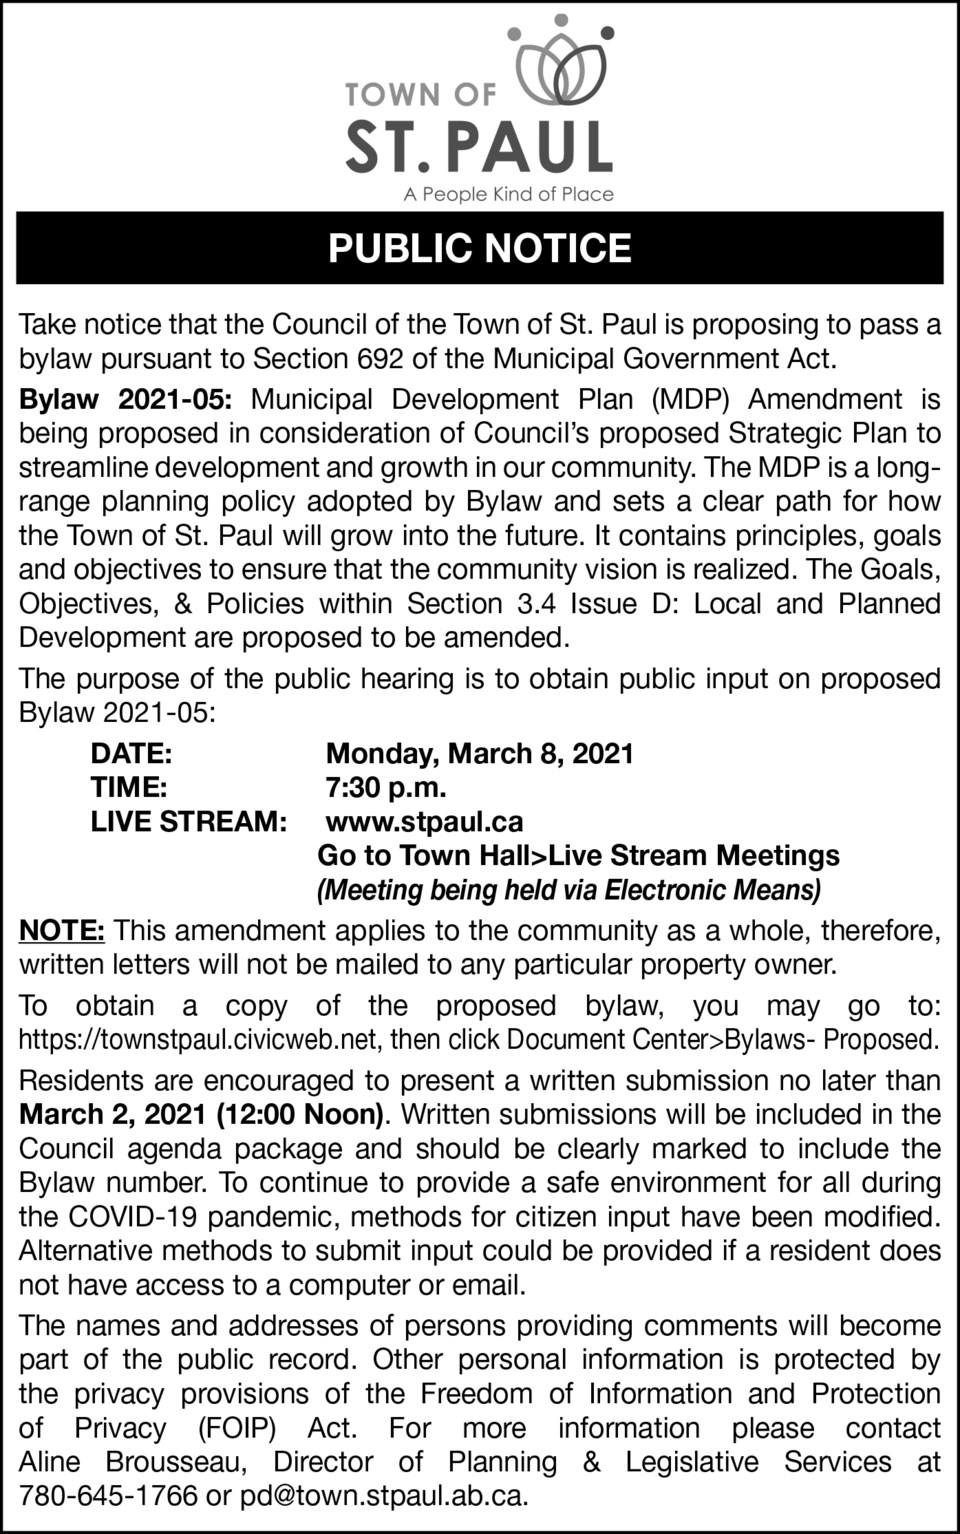 Town of St. Paul Public Notice